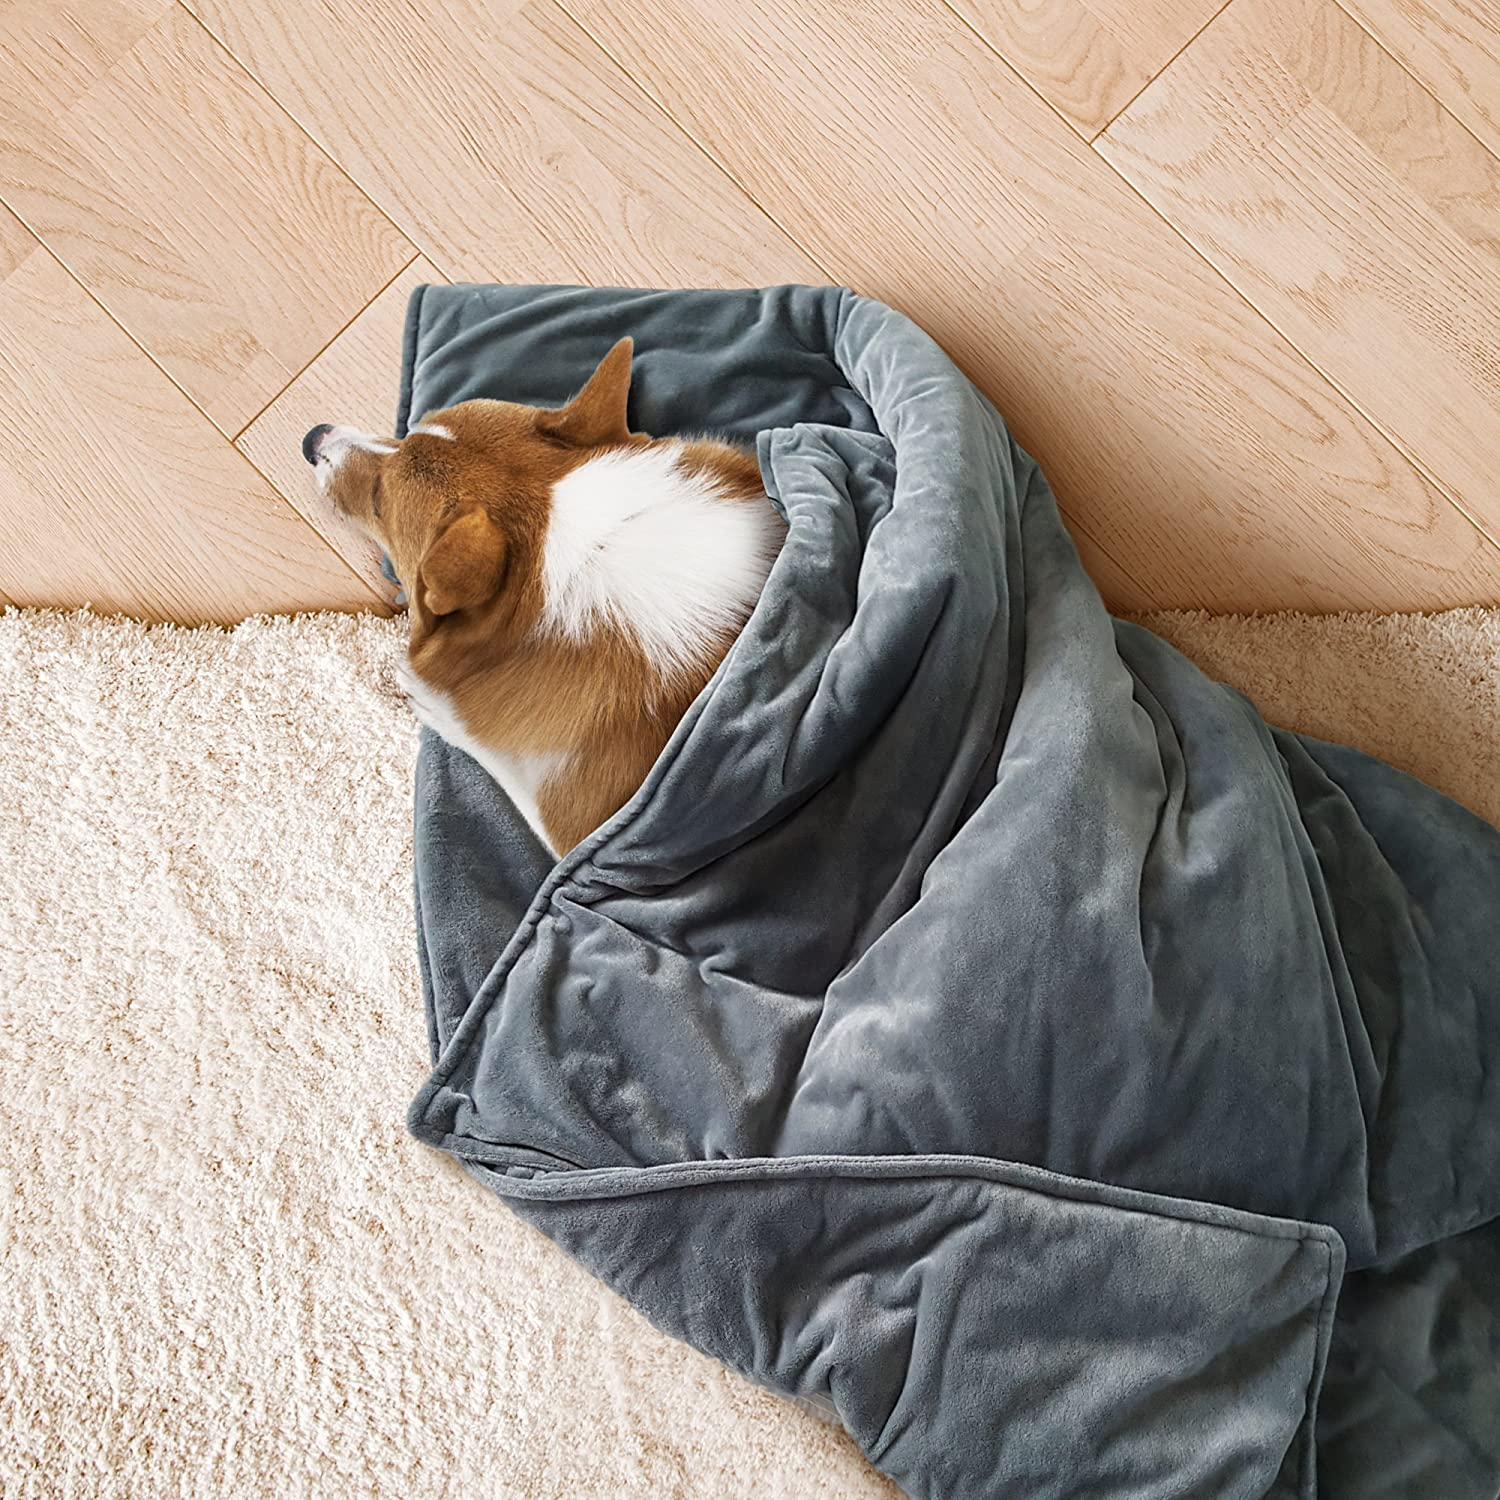 You Can Now Get A Weighted Blanket For Your Anxious Dog